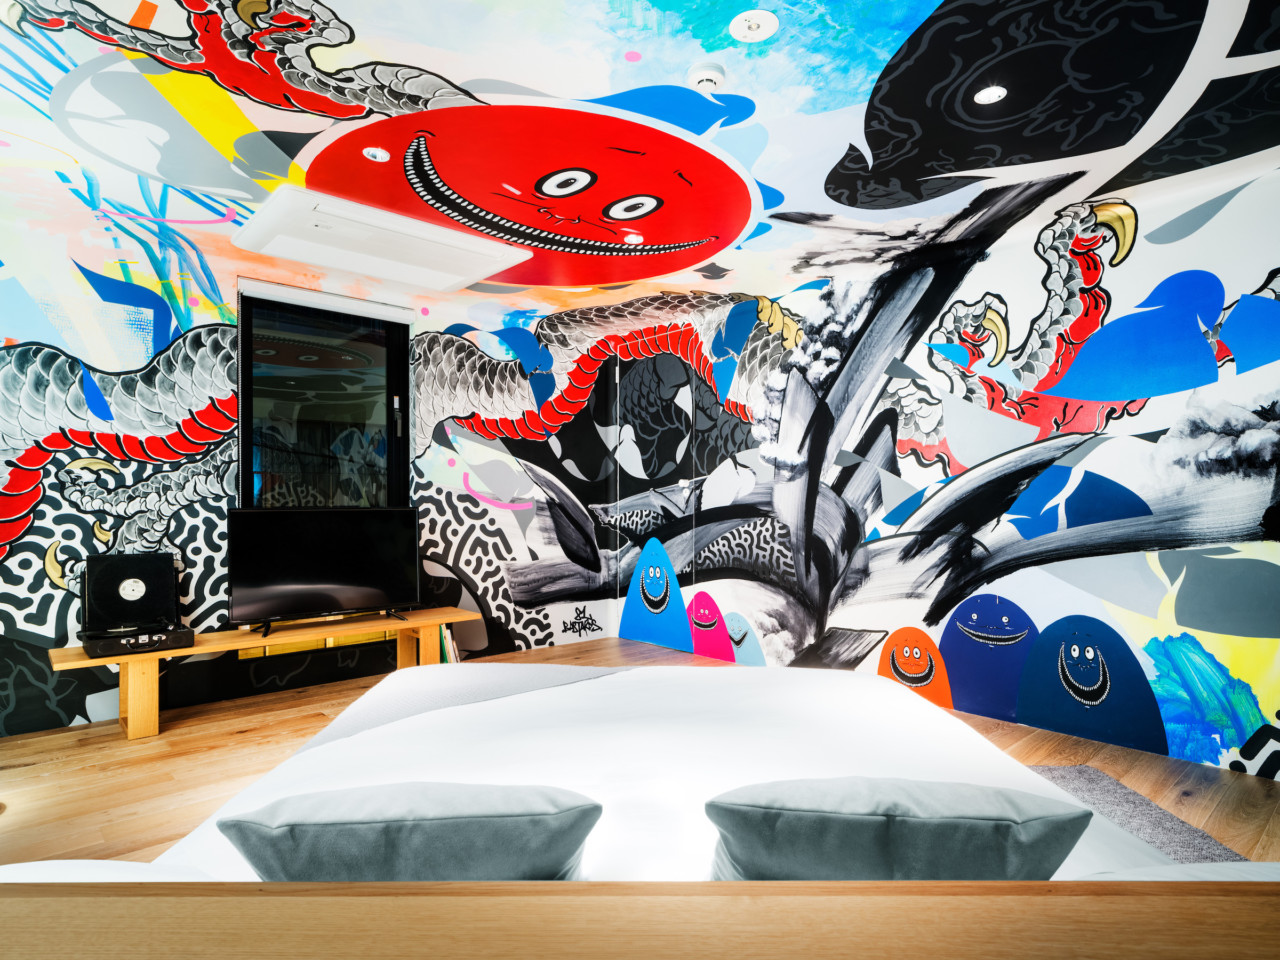 Art-Centric BnA STUDIO Akihabara Hotel Features Five Livable Art Rooms